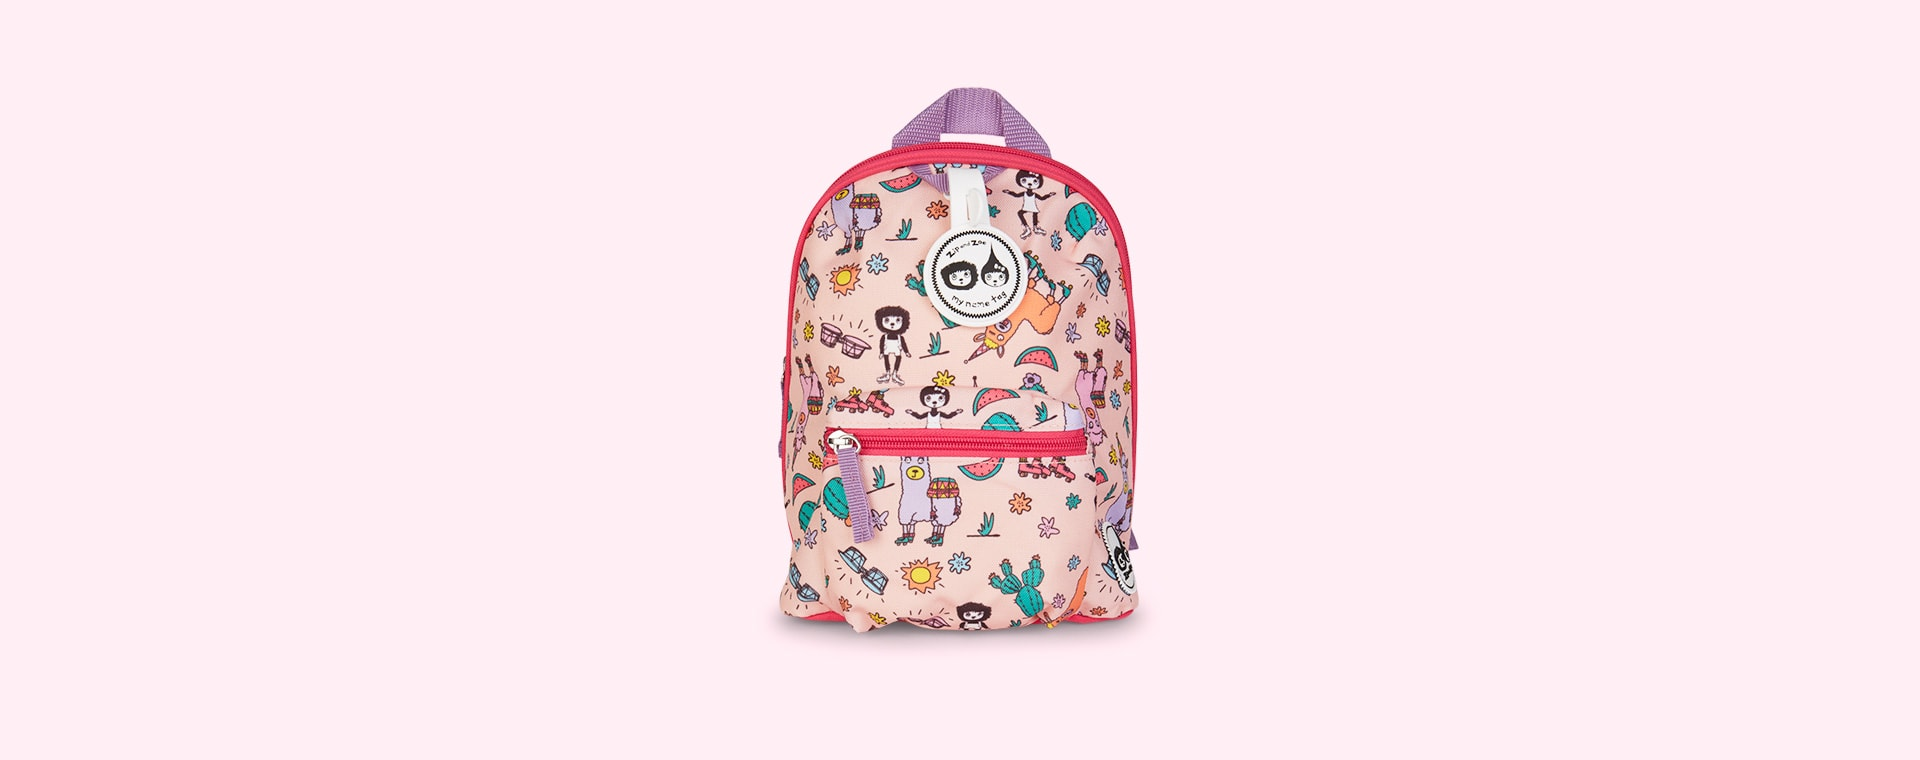 Llama Babymel Mini Kids Backpack with Rein